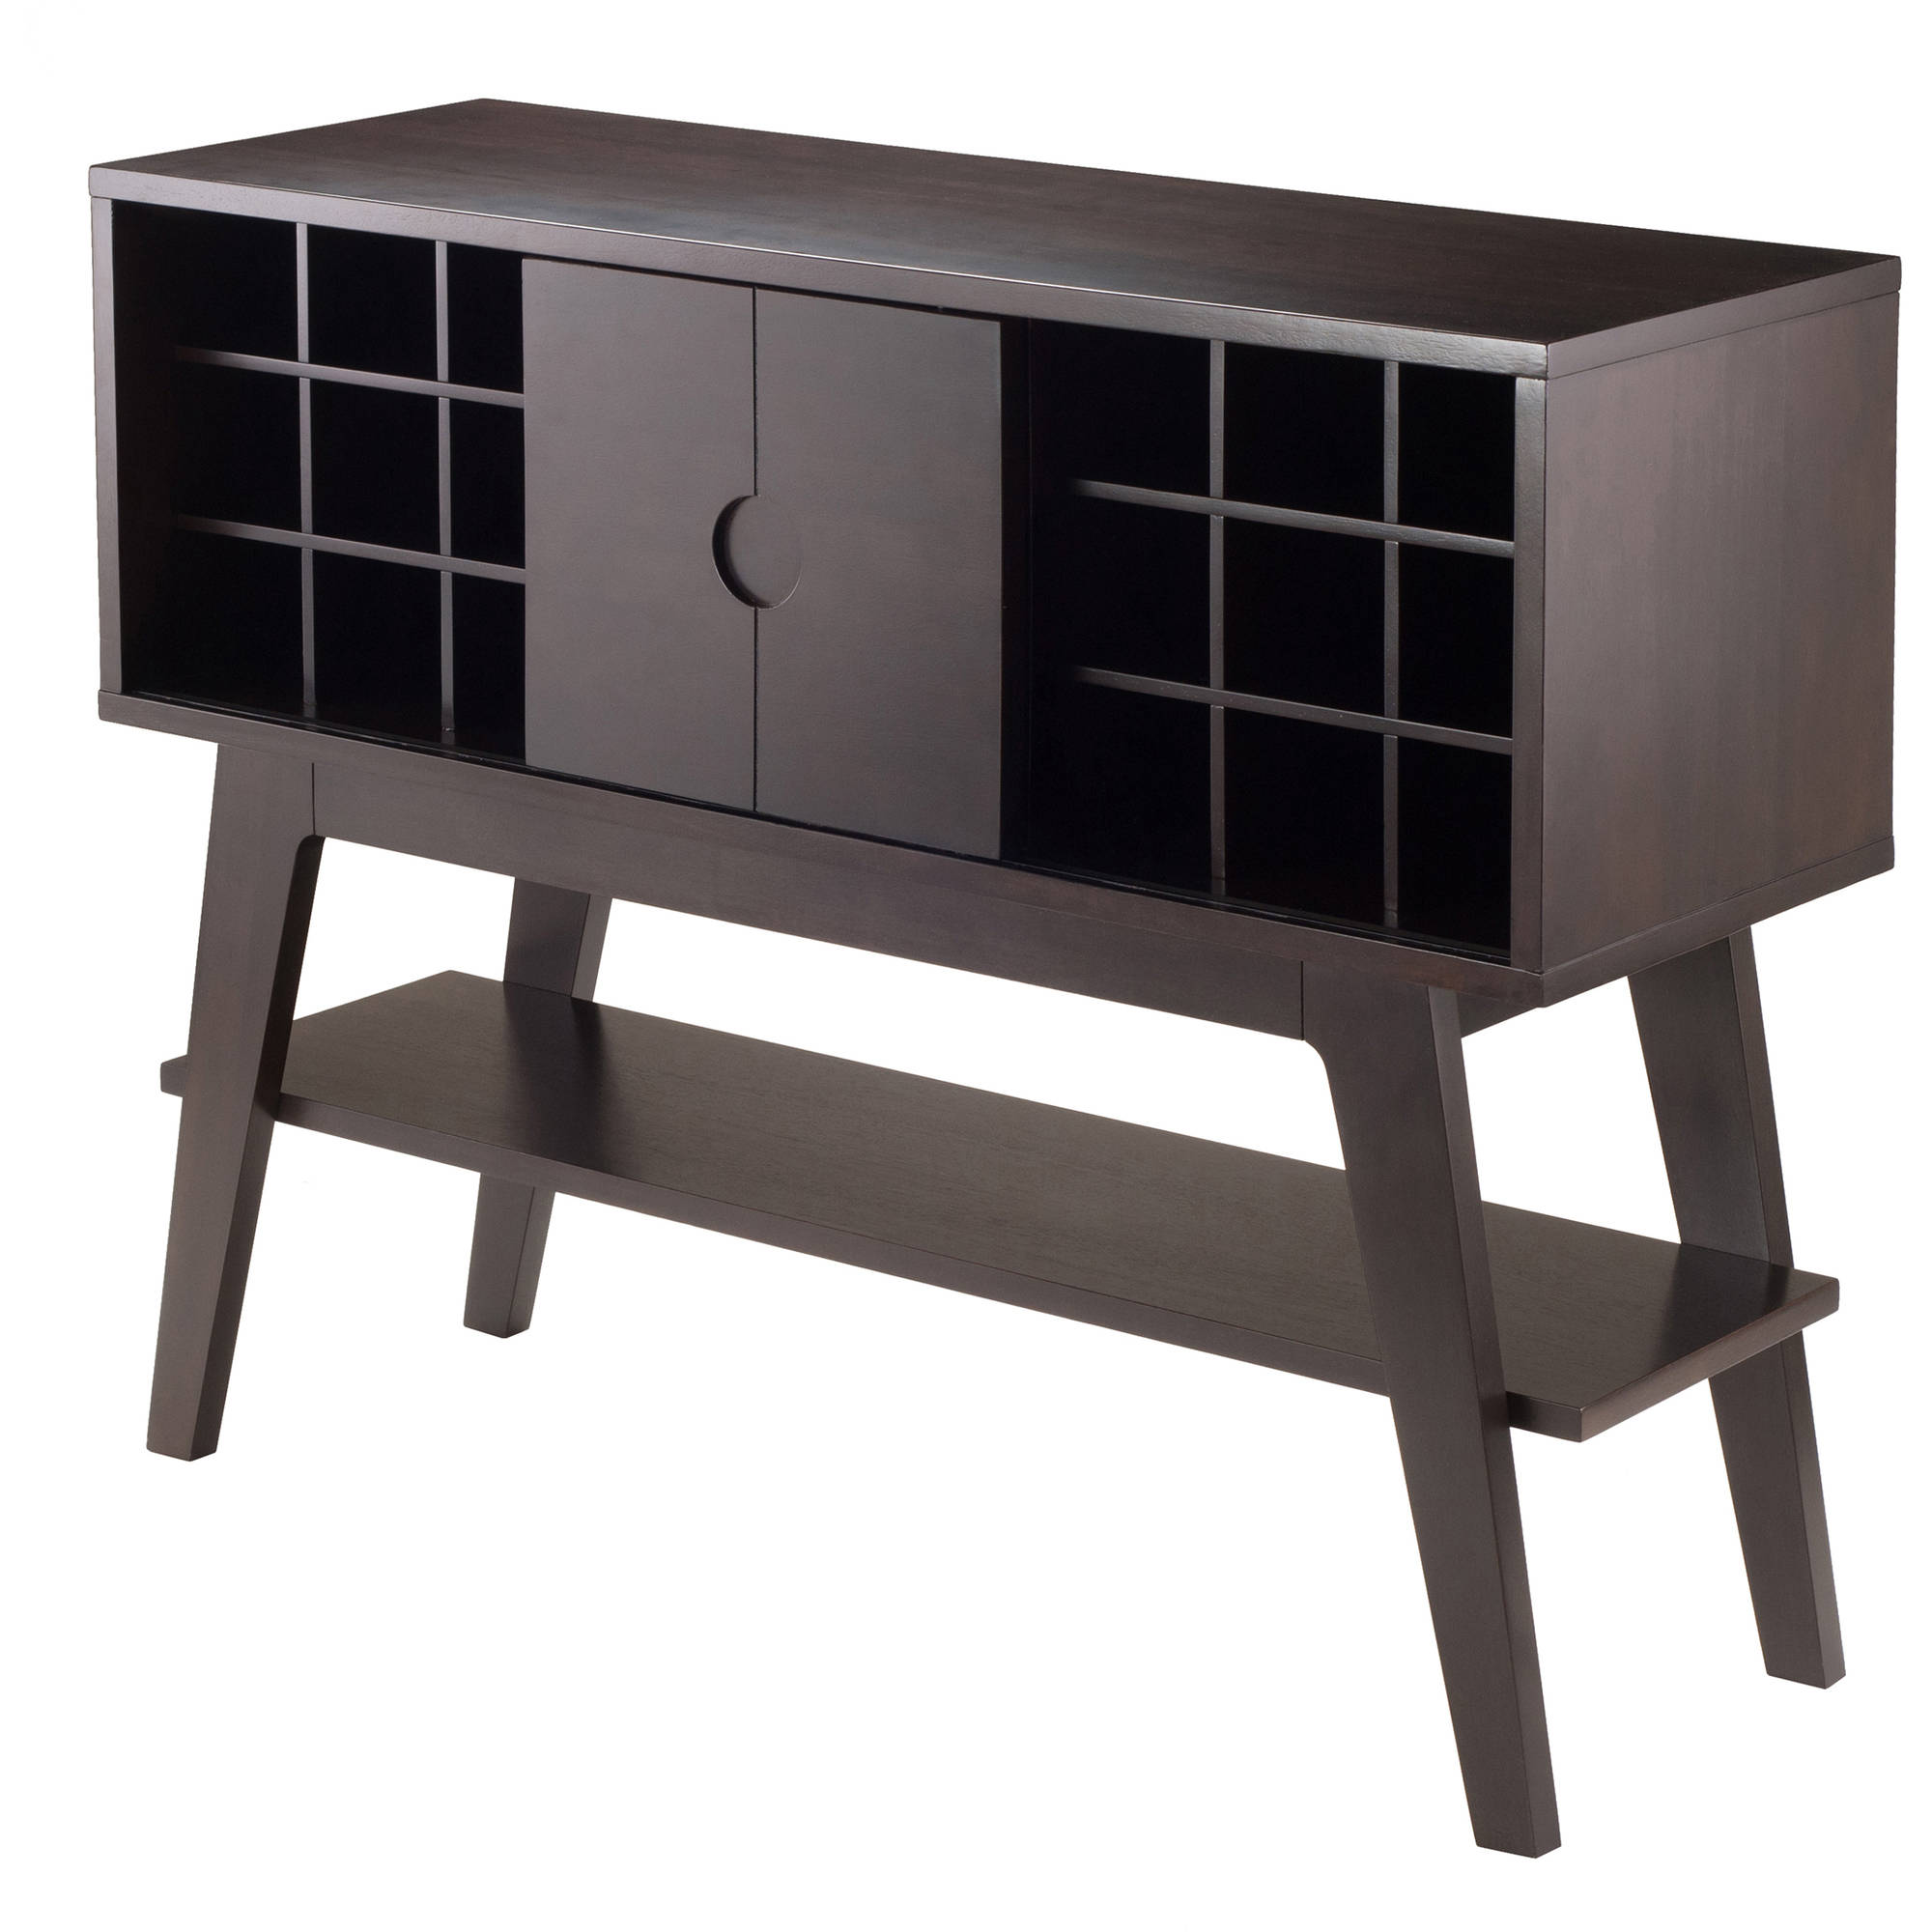 Winsome Monty Wine Console Table, Smoke